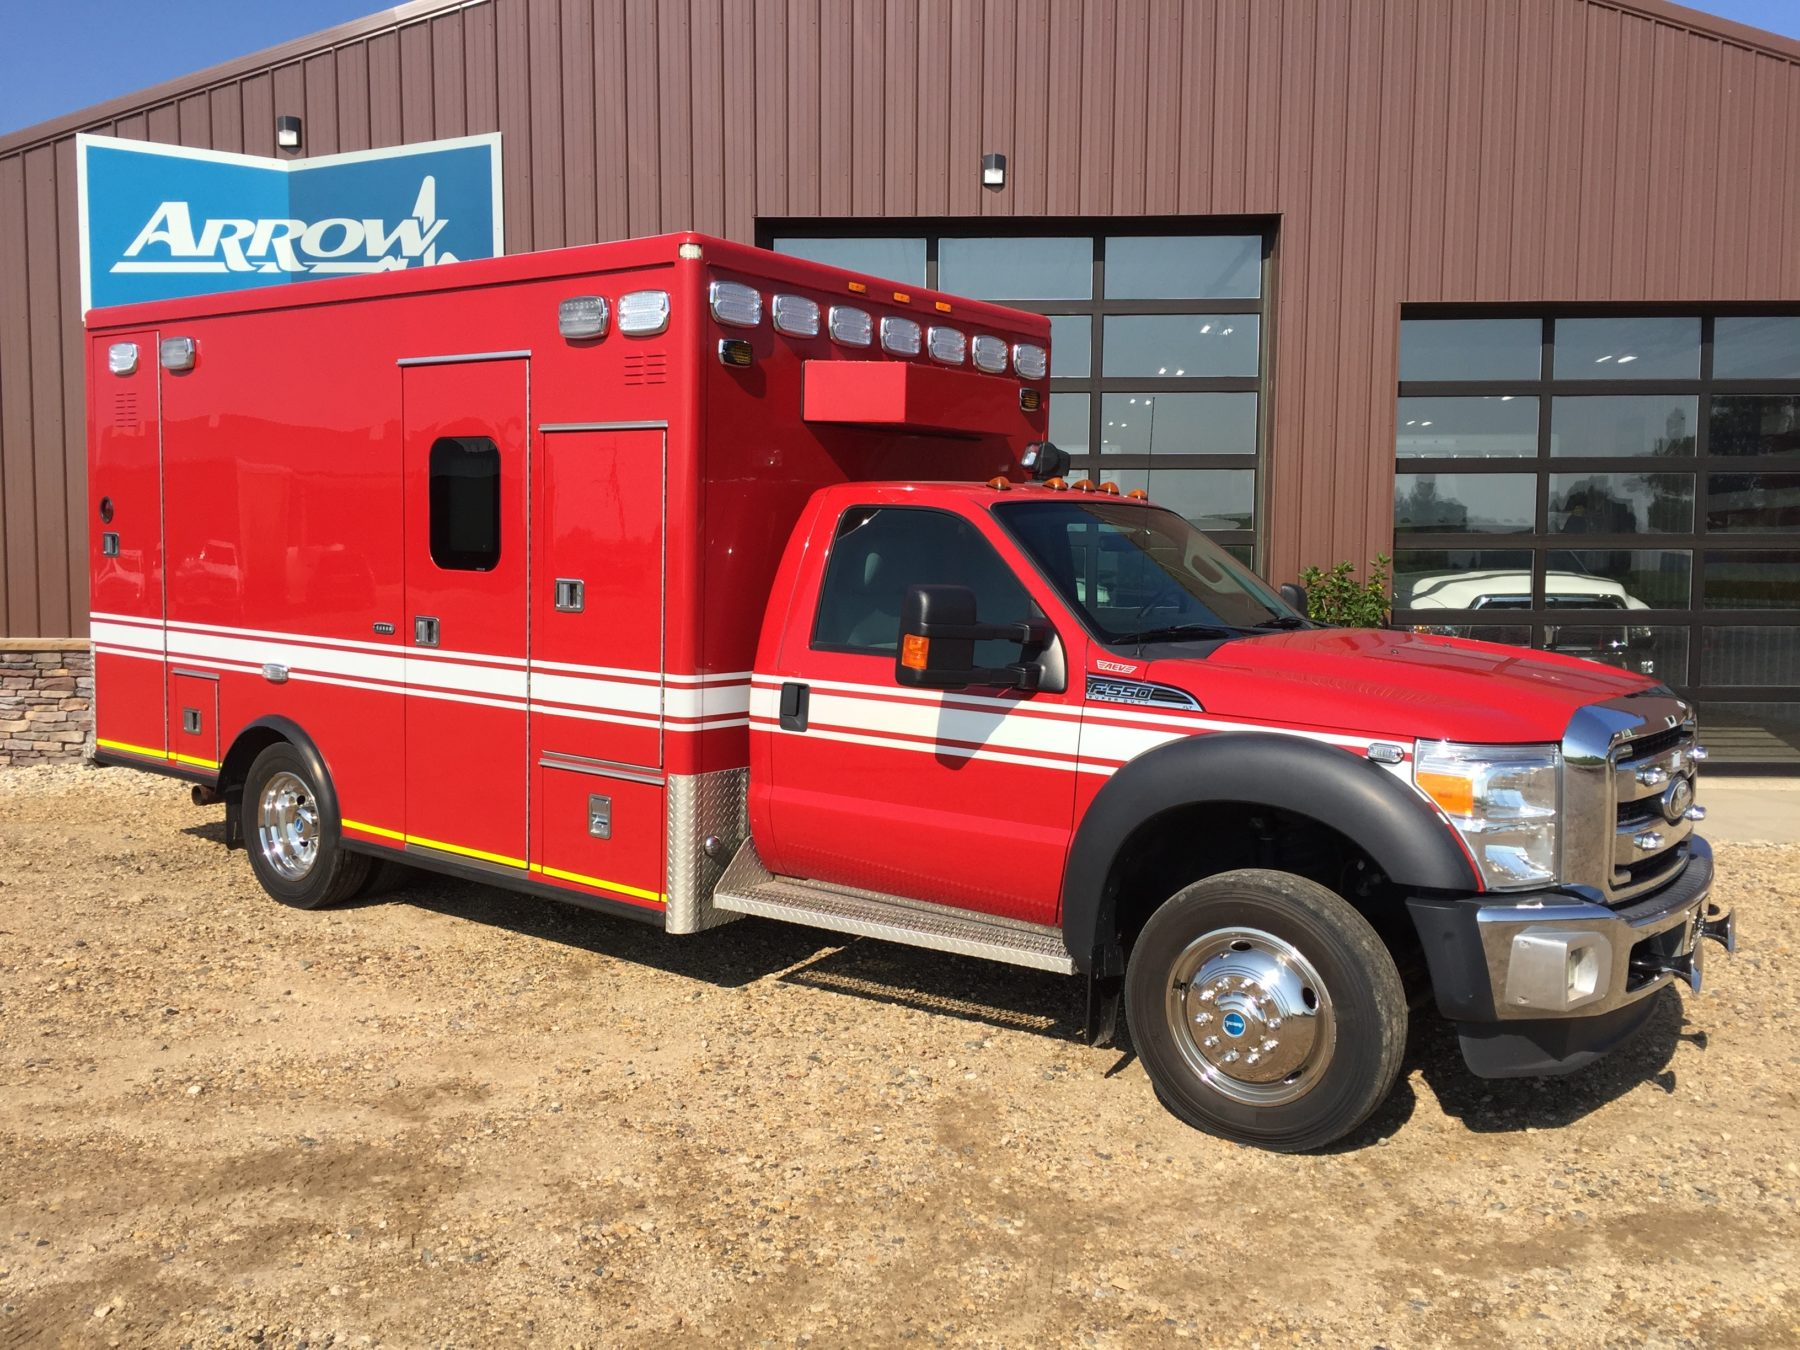 2012 Ford F550 4x4 Heavy Duty Ambulance For Sale – Picture 3